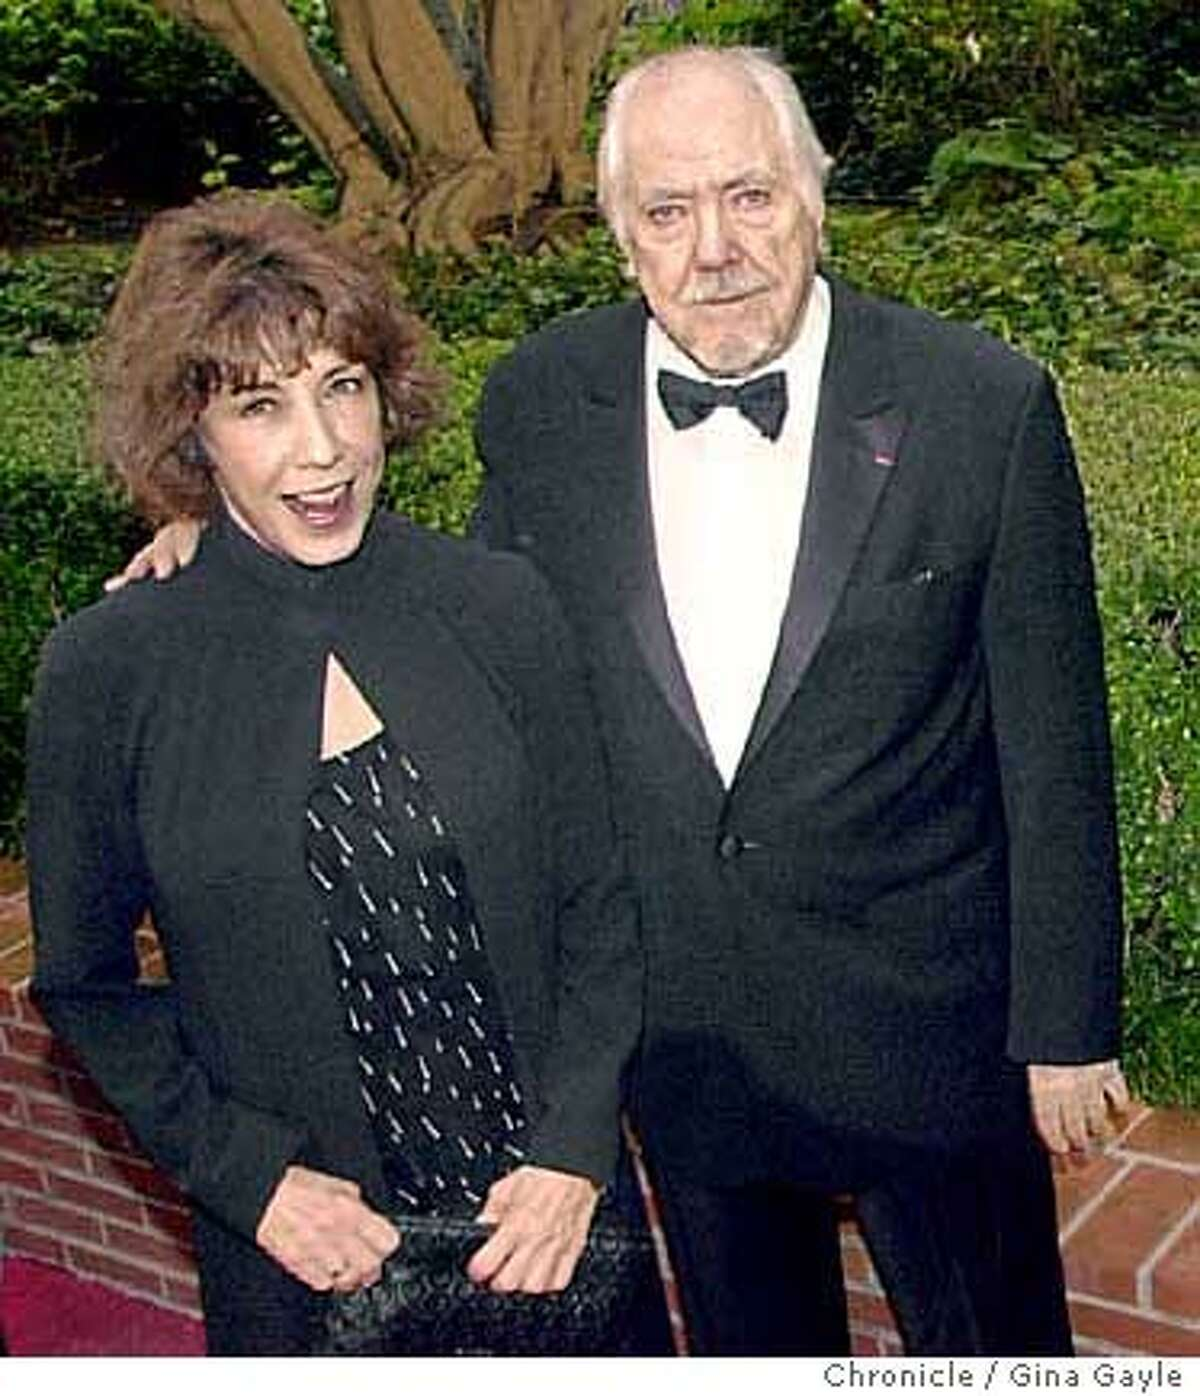 Lily Tomlin, Robert Altman and met on the red carpet at the San Francisco film festival party honoring robert Altman and Dustin Hoffman at the Ritz Carlton in San Francisco. Photo by Gina Gayle/The SF Chronicle.